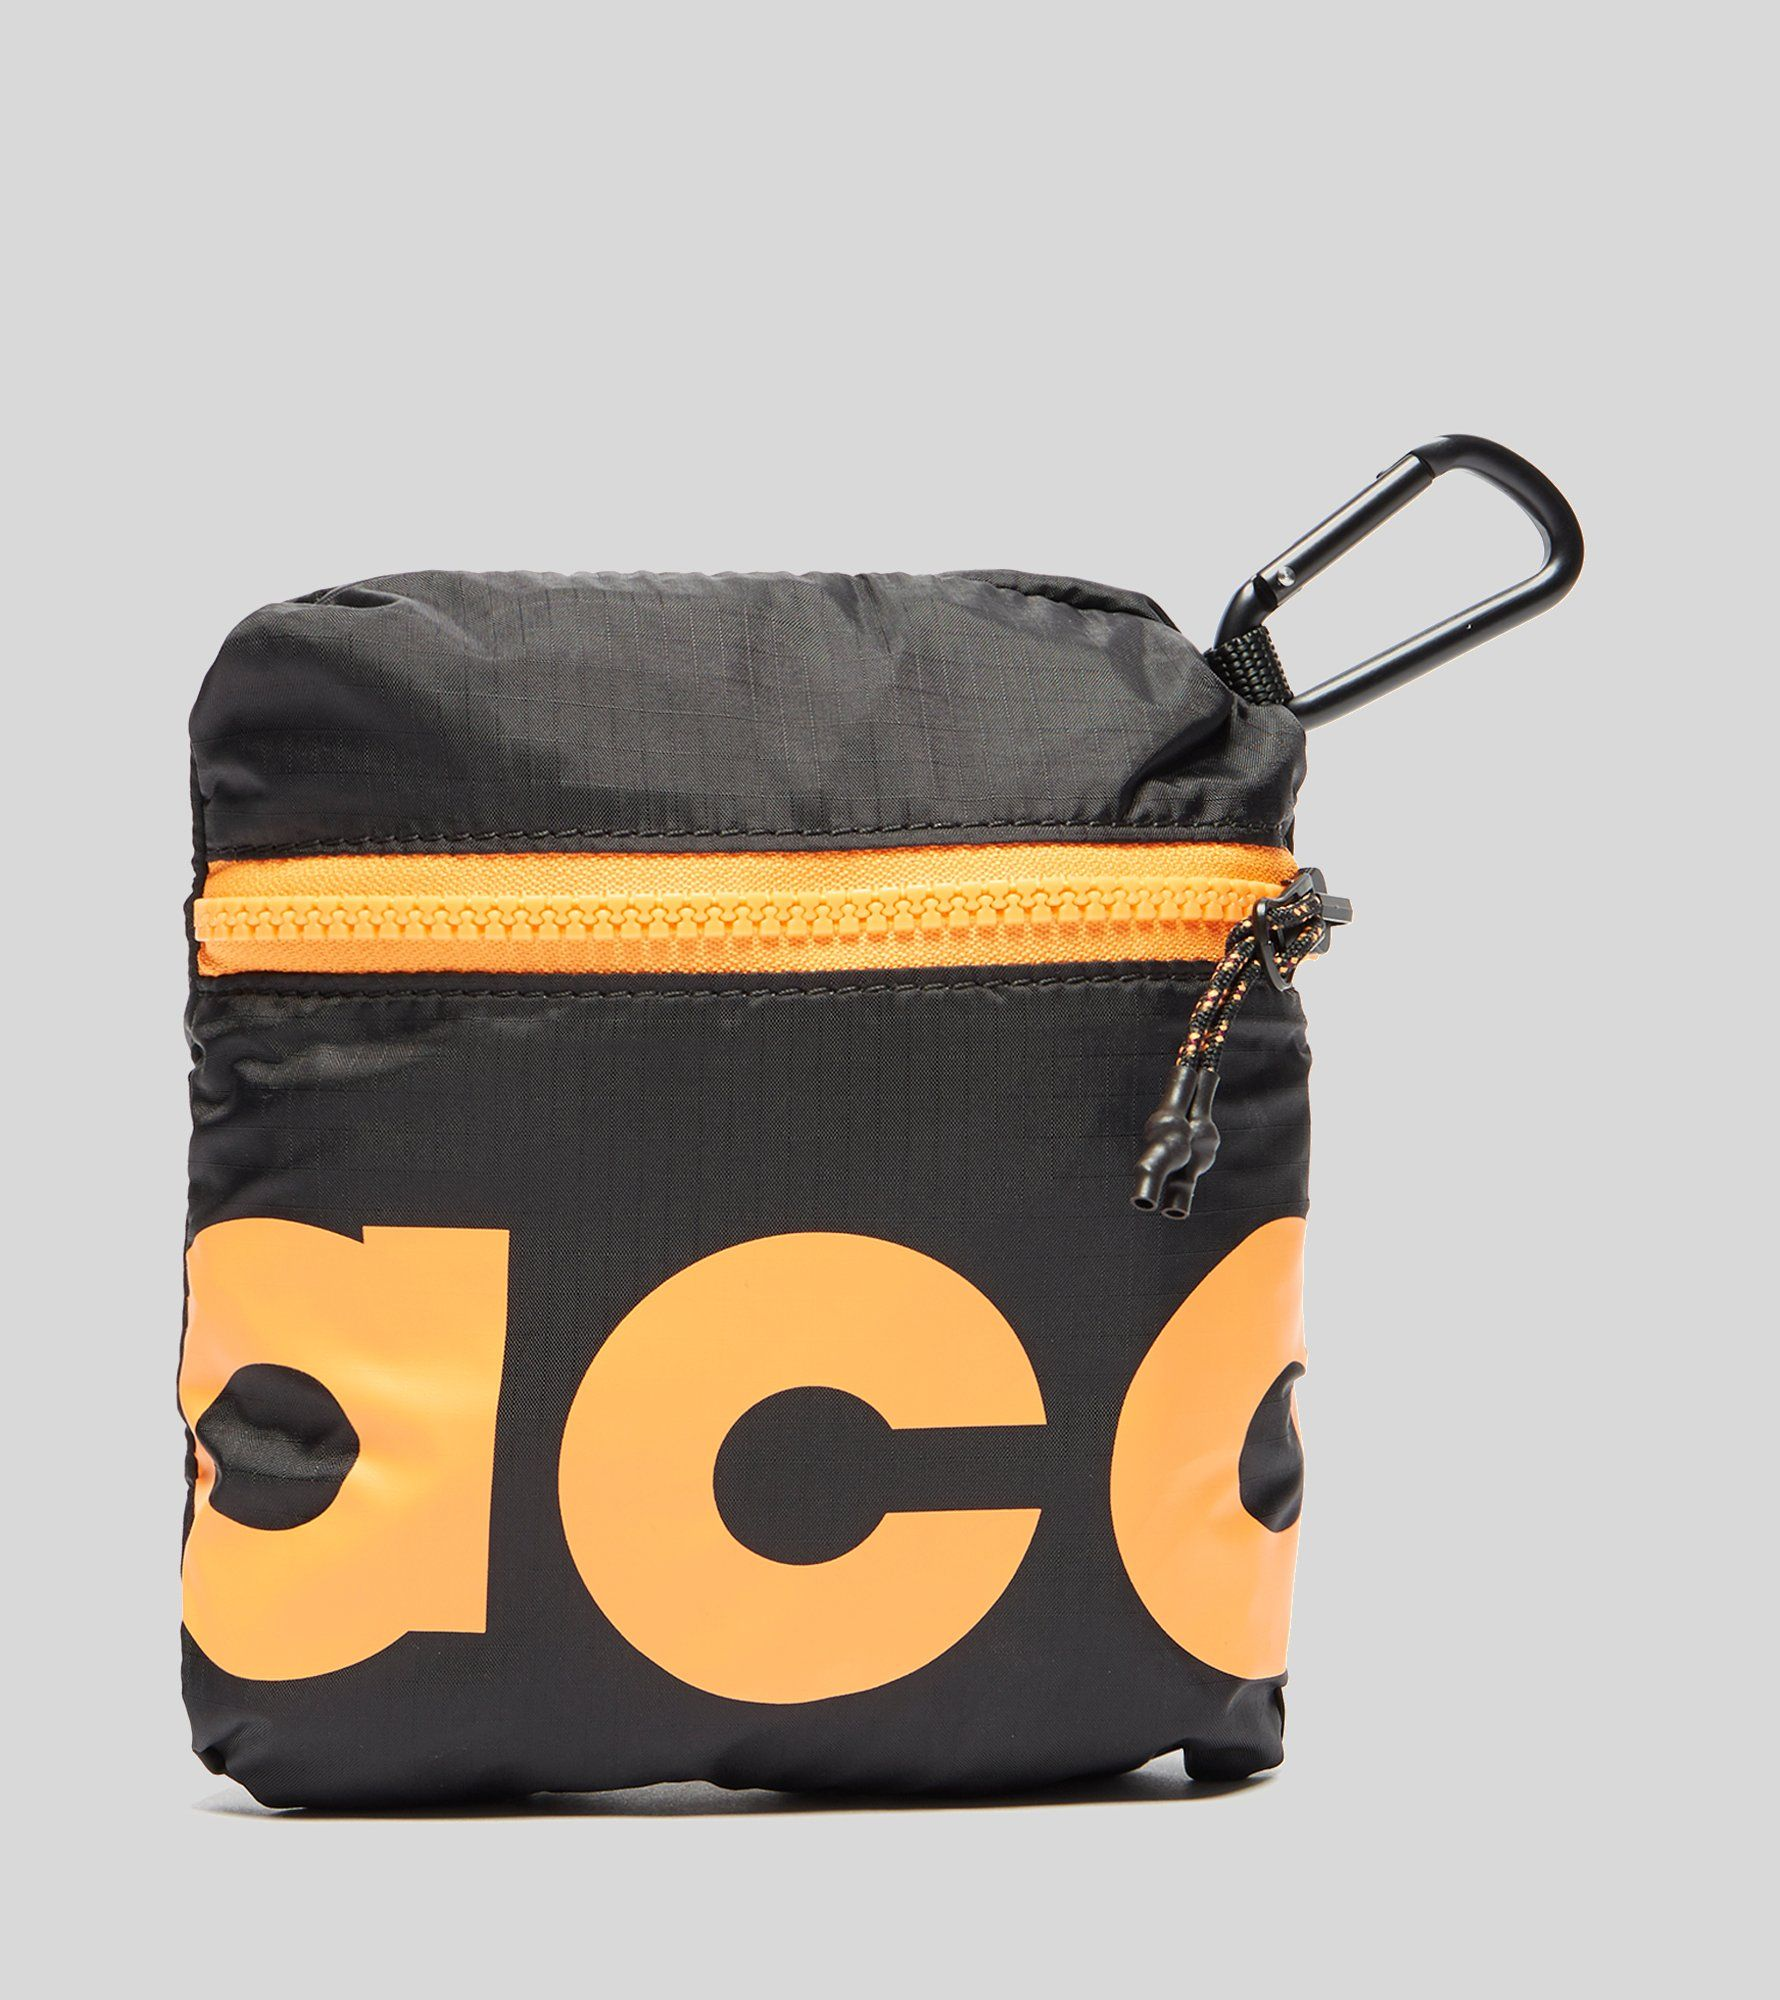 Nike ACG Packable Duffle Bag